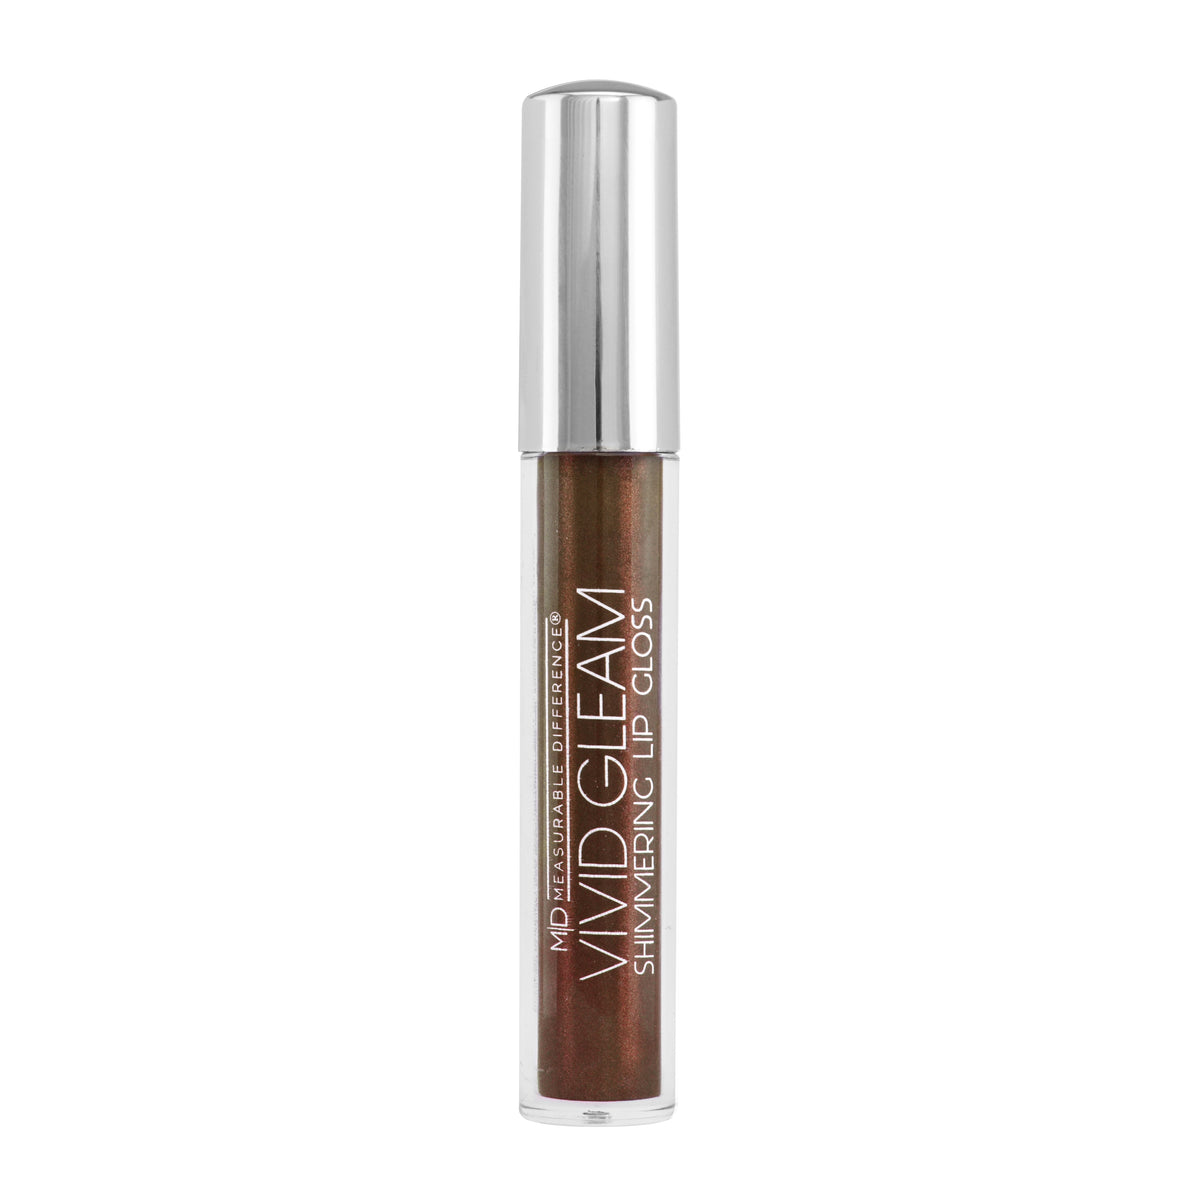 Vivid Gleam Shimmering Lip Gloss